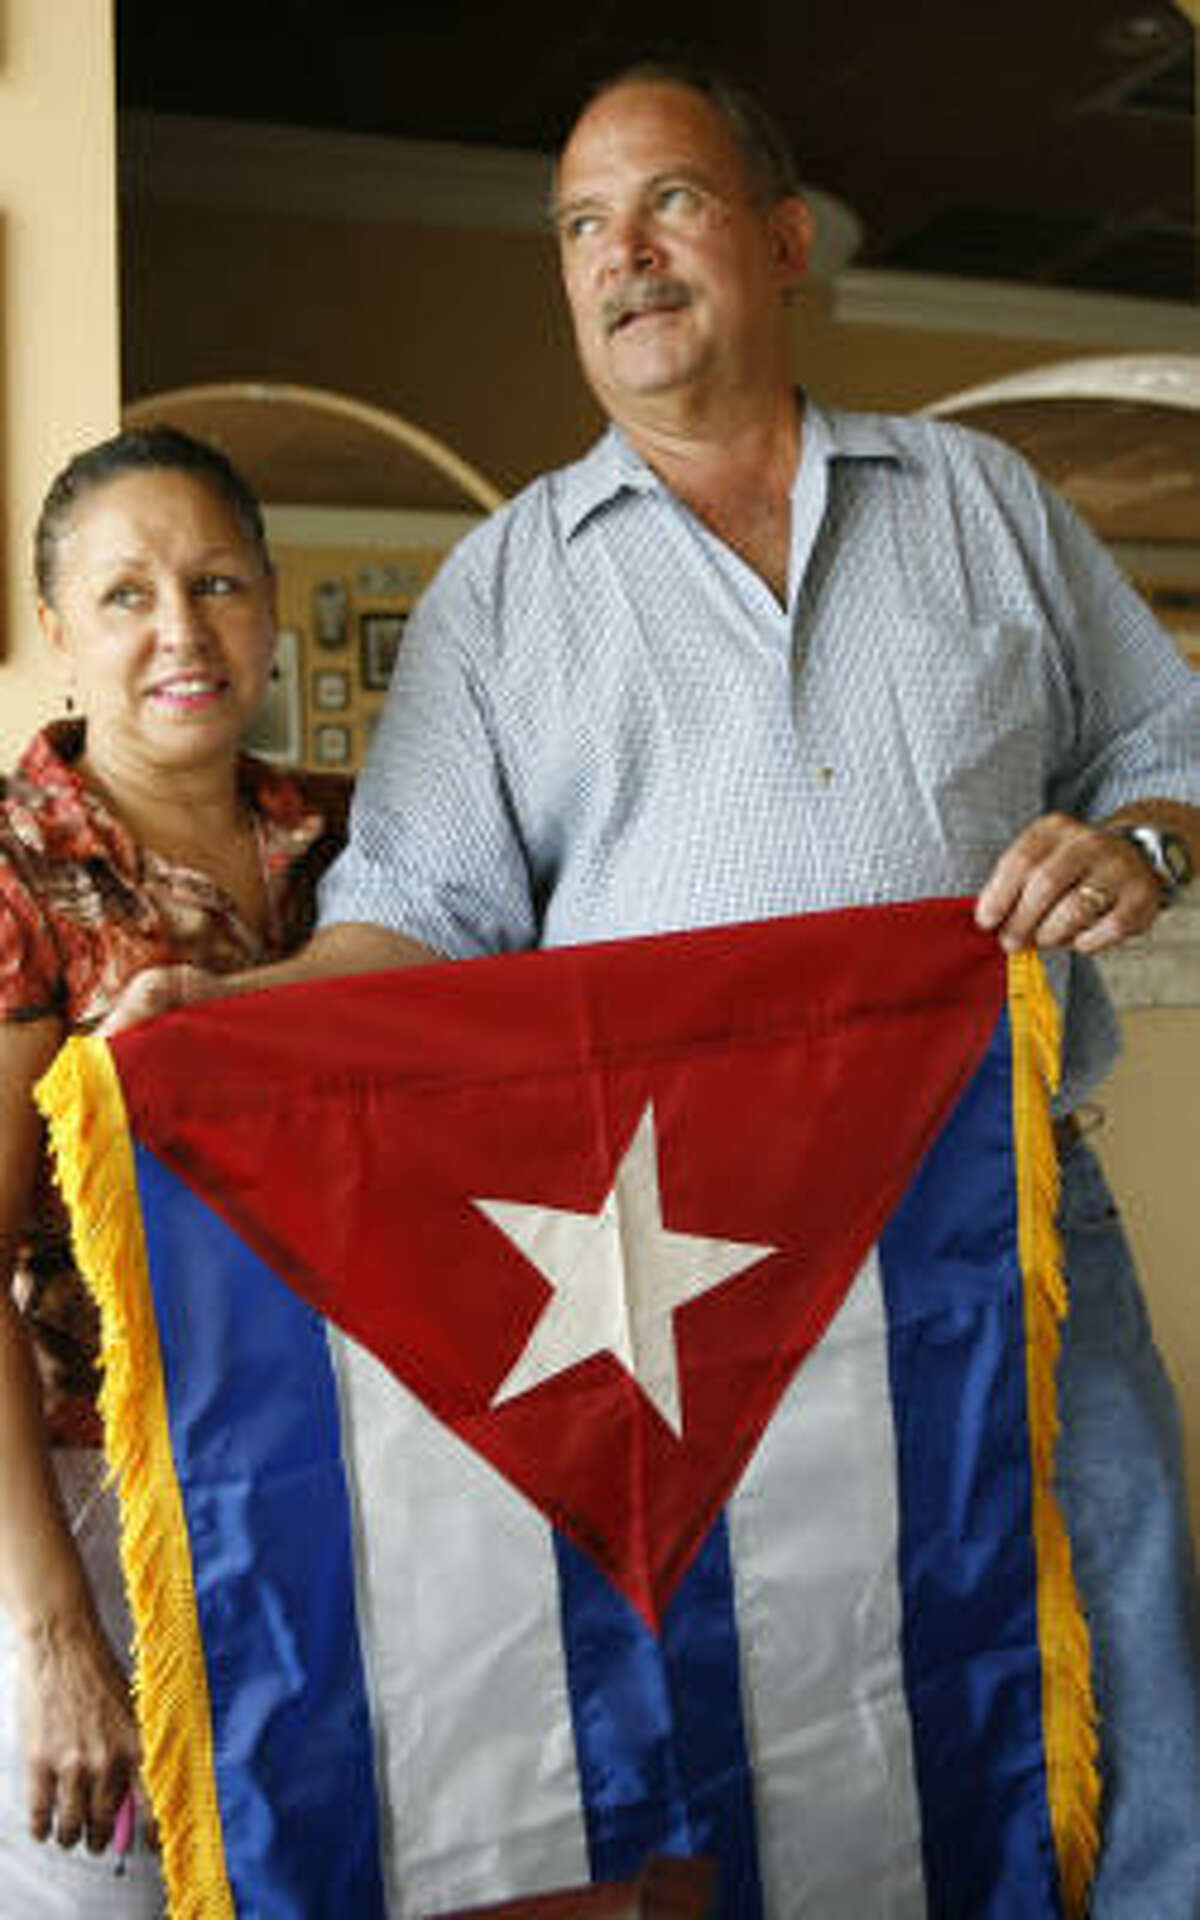 Guido Piquet, right, owner of Cafe Piquet on Bissonnet, and his wife, Nelly, hold a Cuban flag that was given to them several years ago.